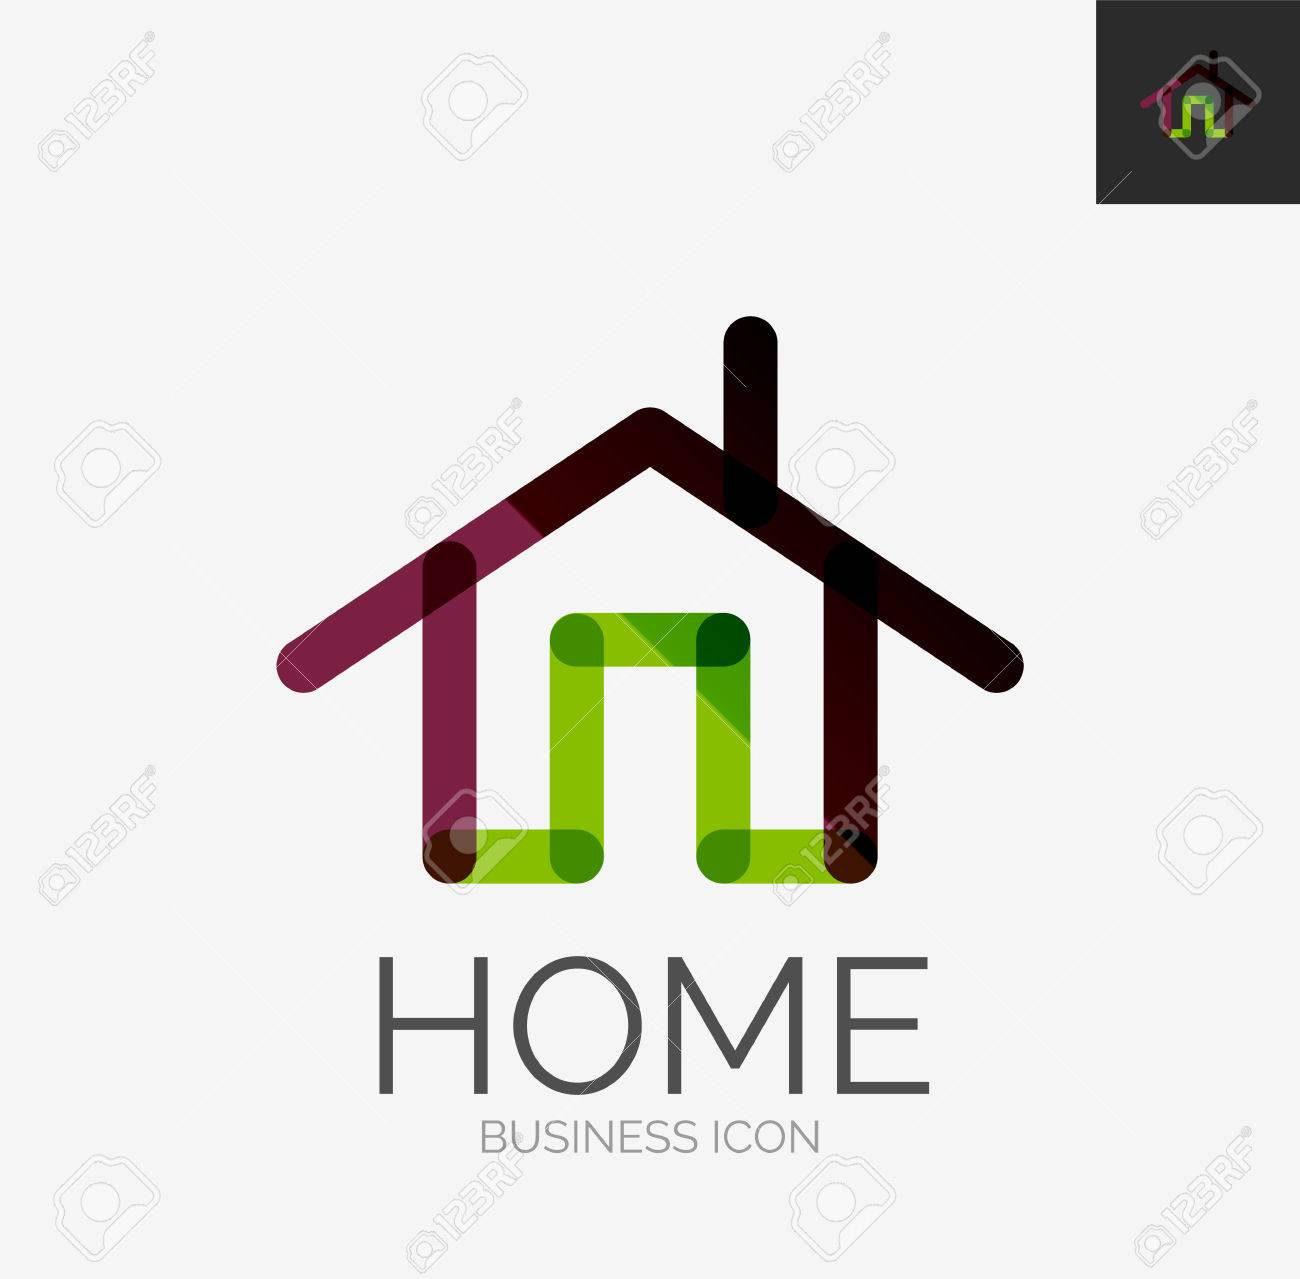 minimal line design logo home icon royalty free cliparts vectors rh 123rf com home icon vector download home icon vector download